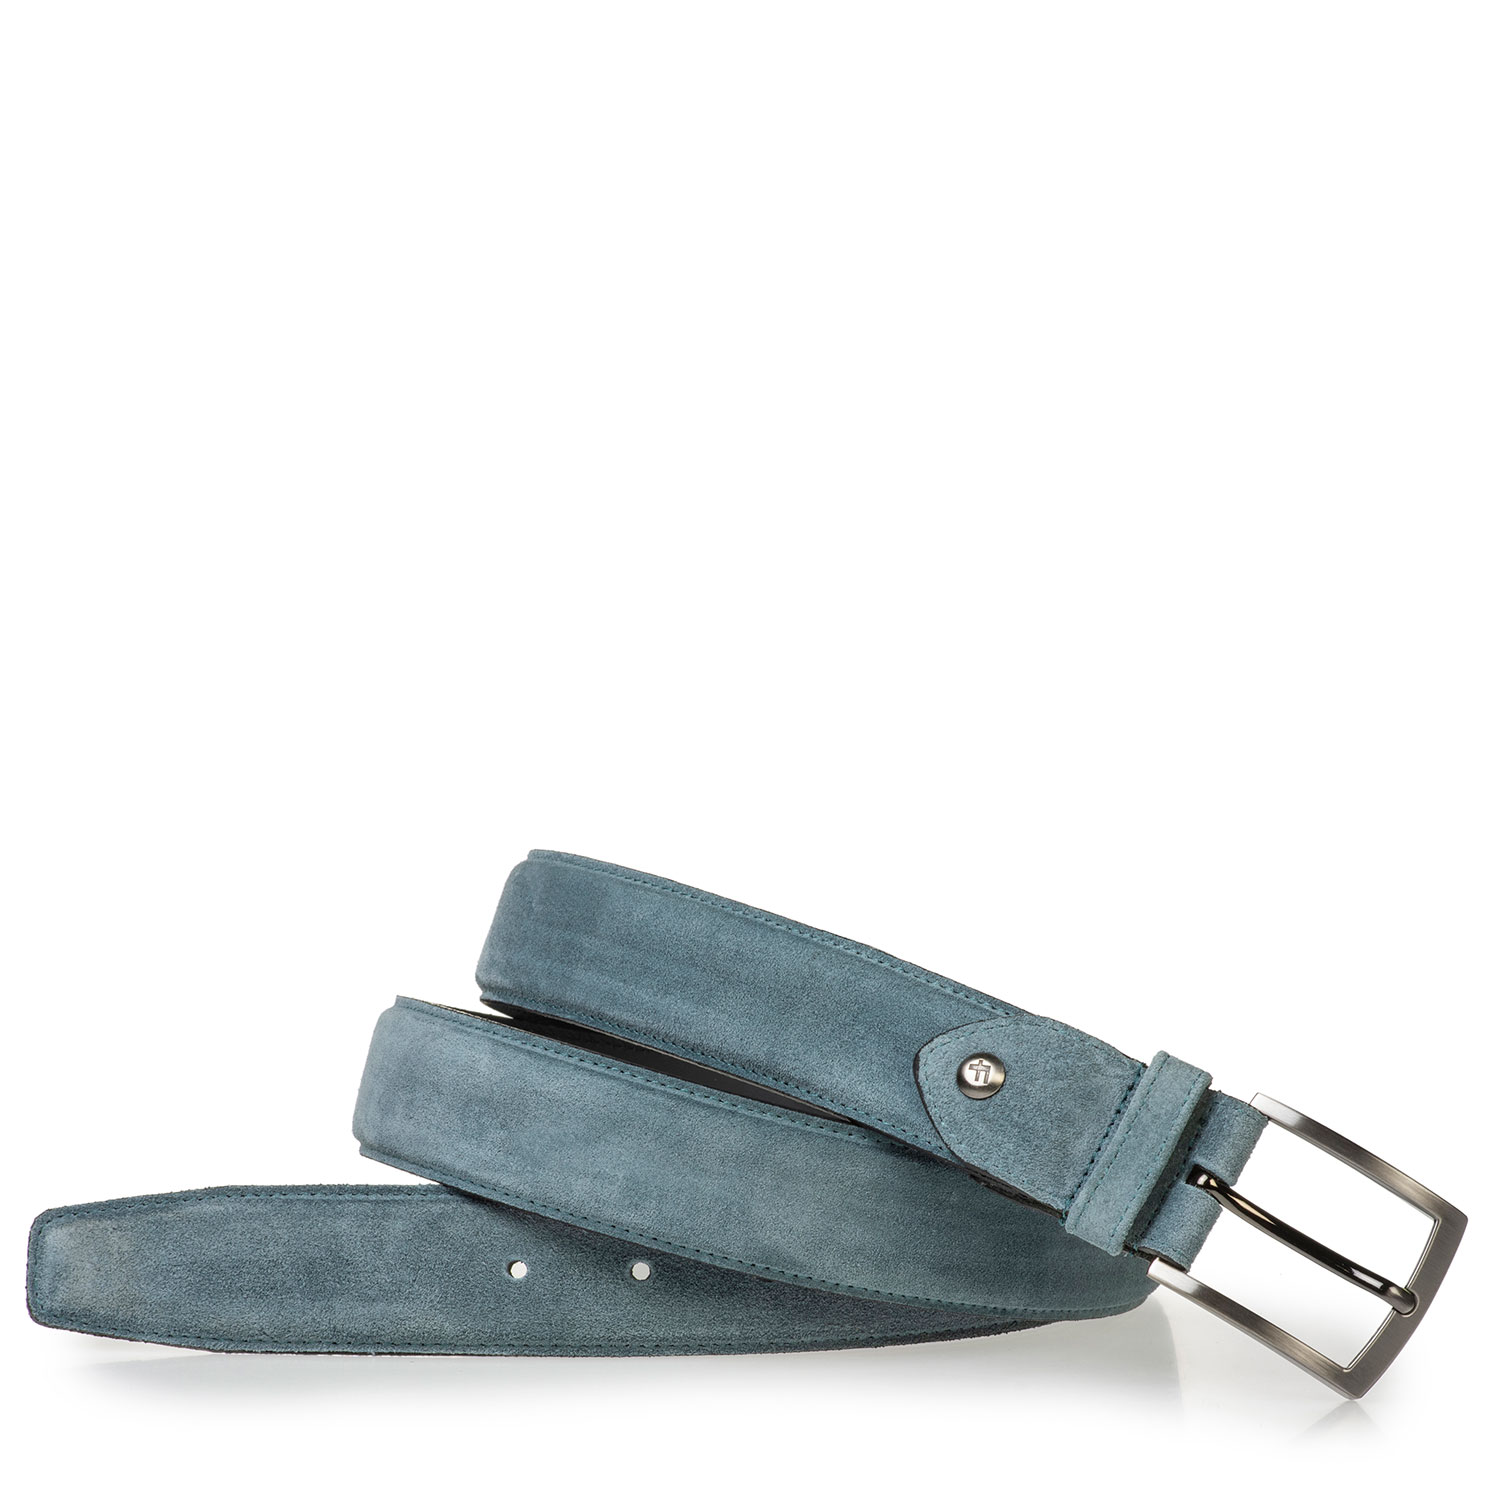 75201/94 - Light blue belt made of waxed suede leather